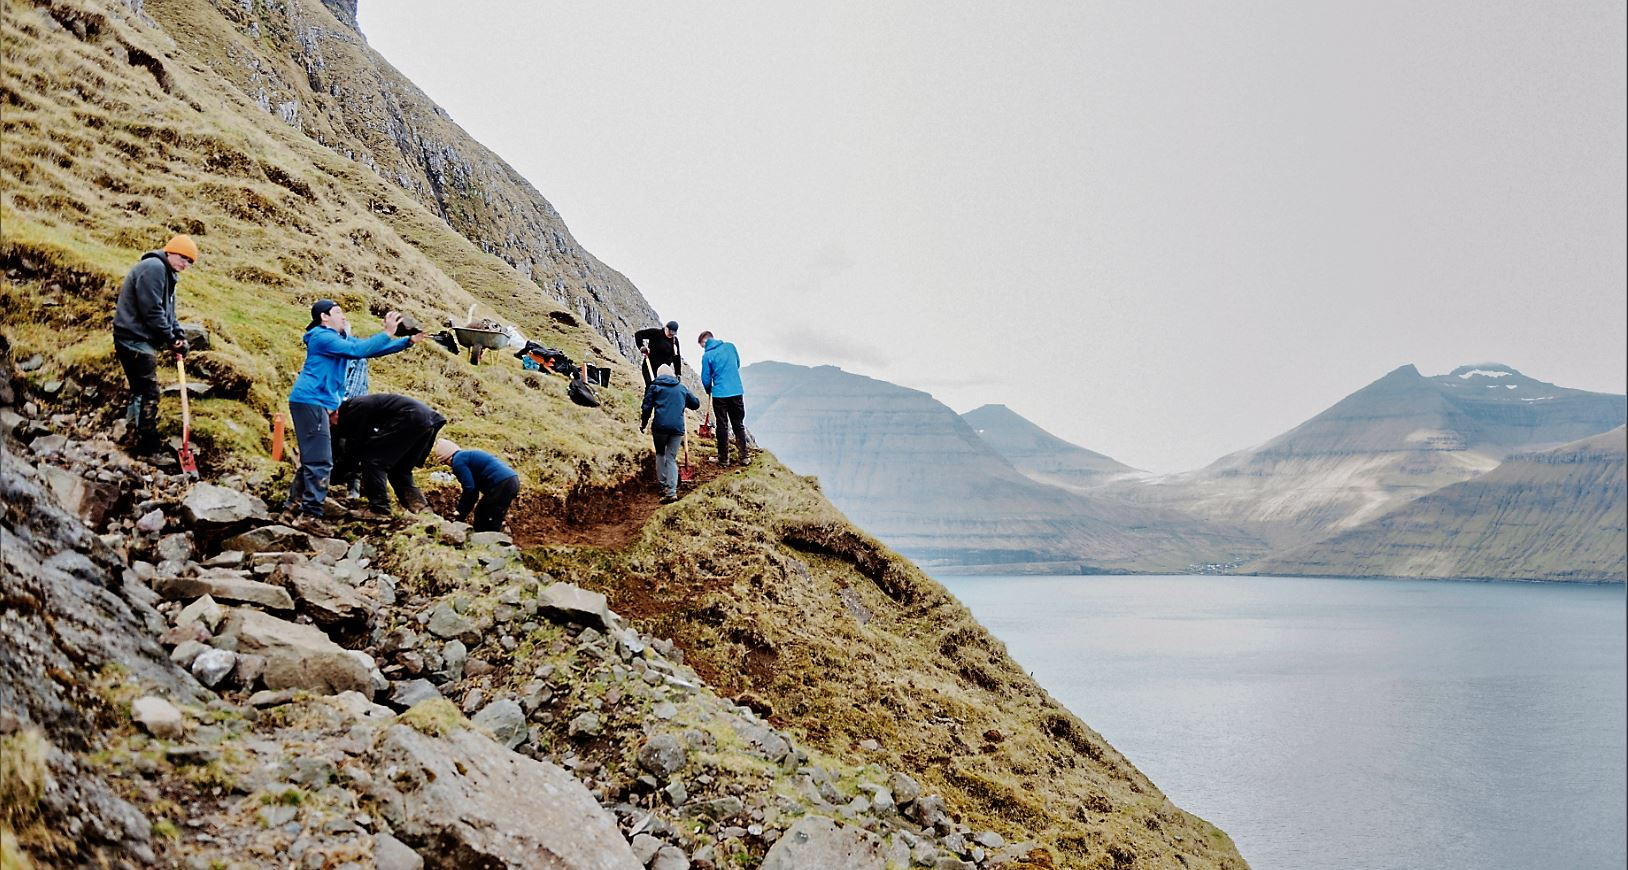 Closing down the Faroes to attract more tourists